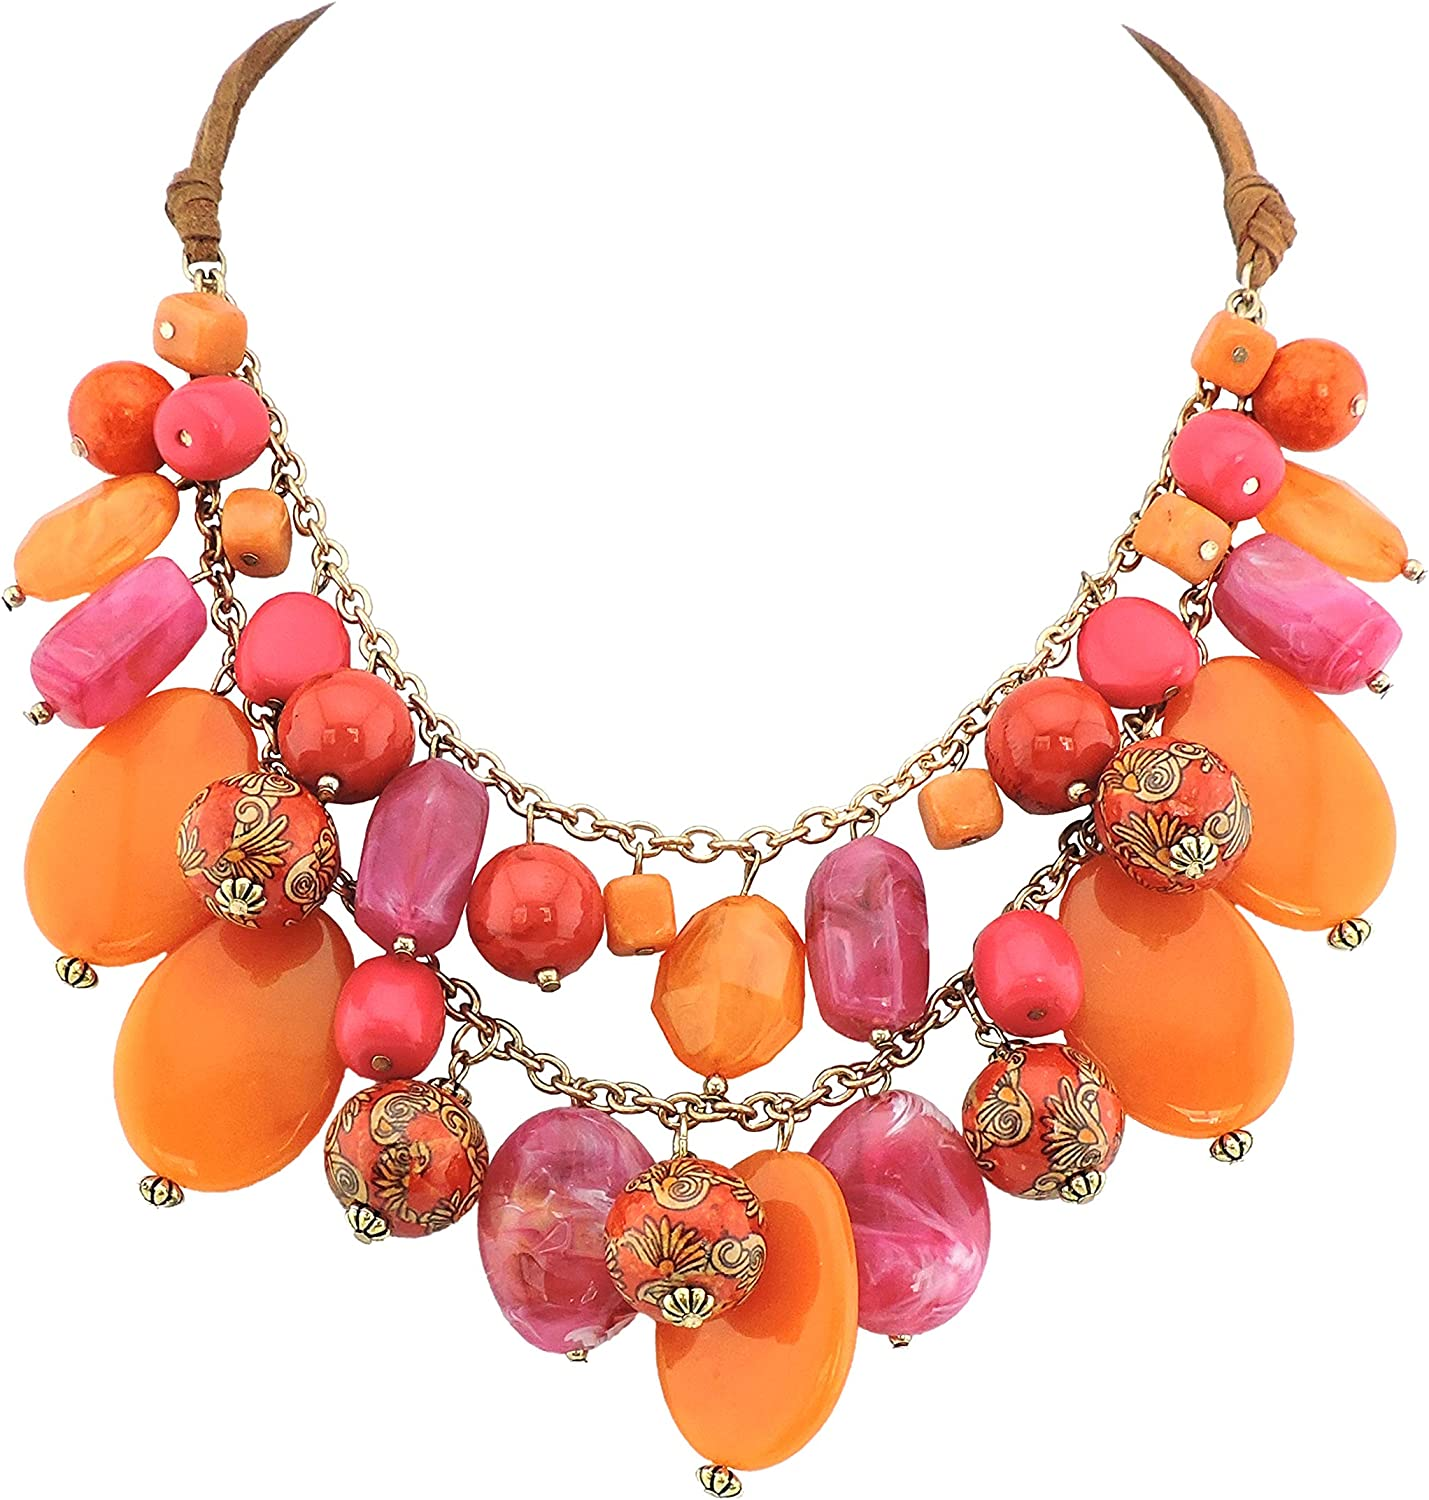 BOCARJEWELRY BOCAR 2 Layer Statement Necklace Chunky Beaded Fashion Necklace for Women Gifts